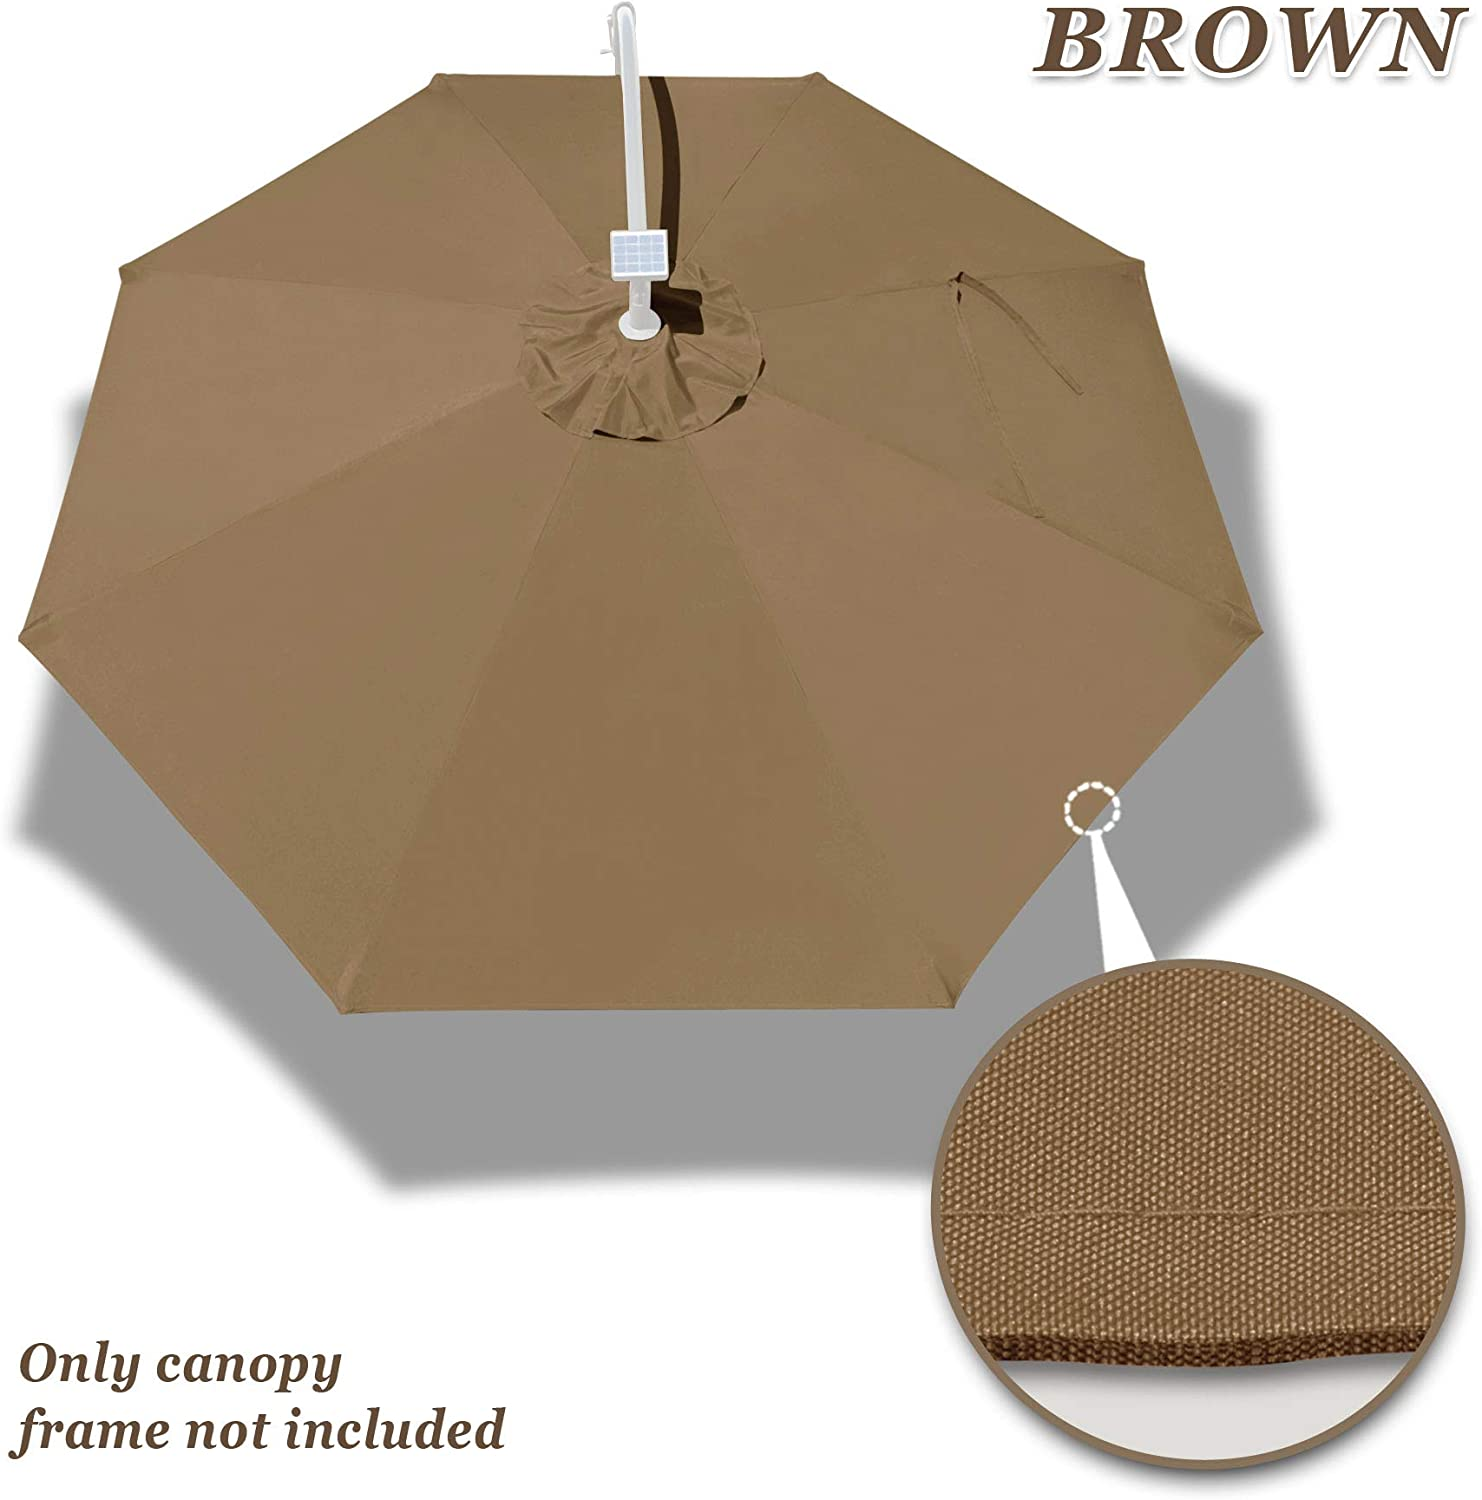 Strong Camel Replacement Canopy for 9FT 8rib Outdoor Patio Umbrella Polyester Top Cover Brown